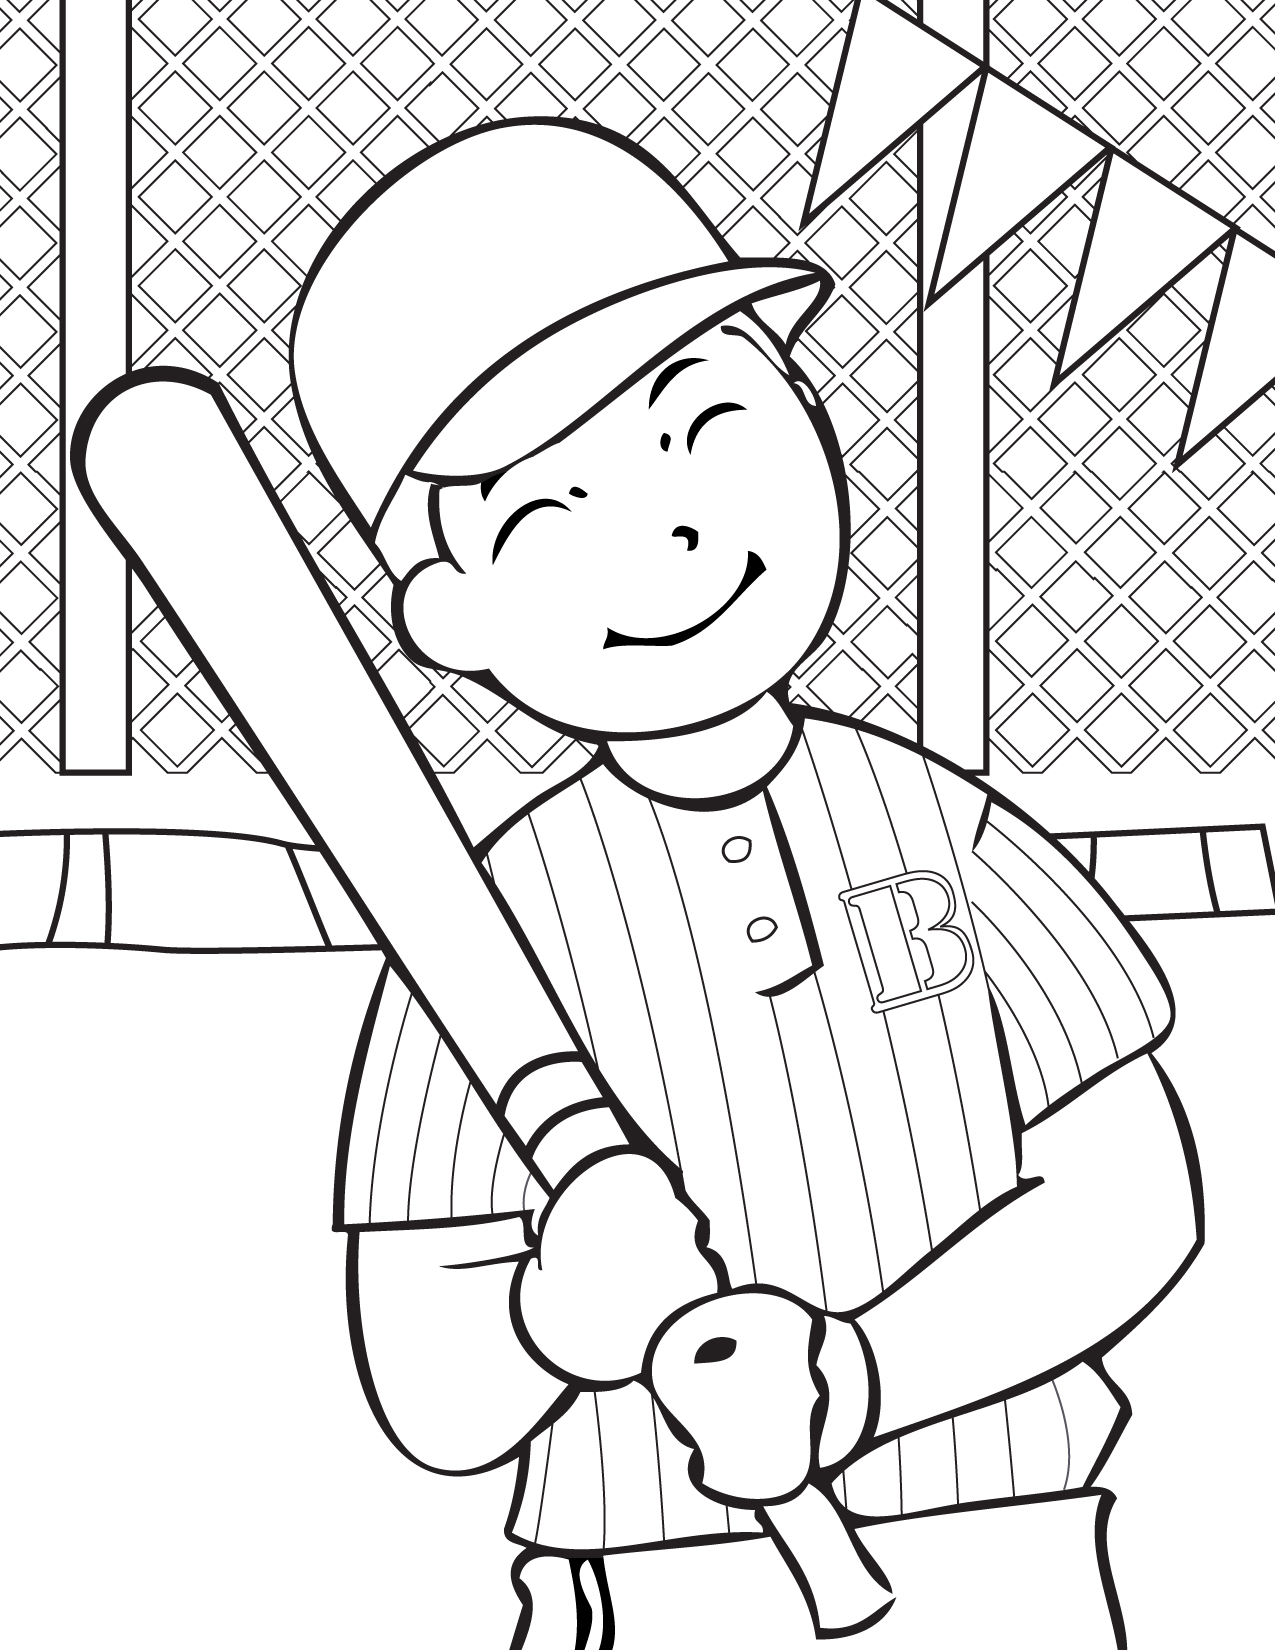 Free printable baseball coloring pages for kids best for Coloring pages toddler